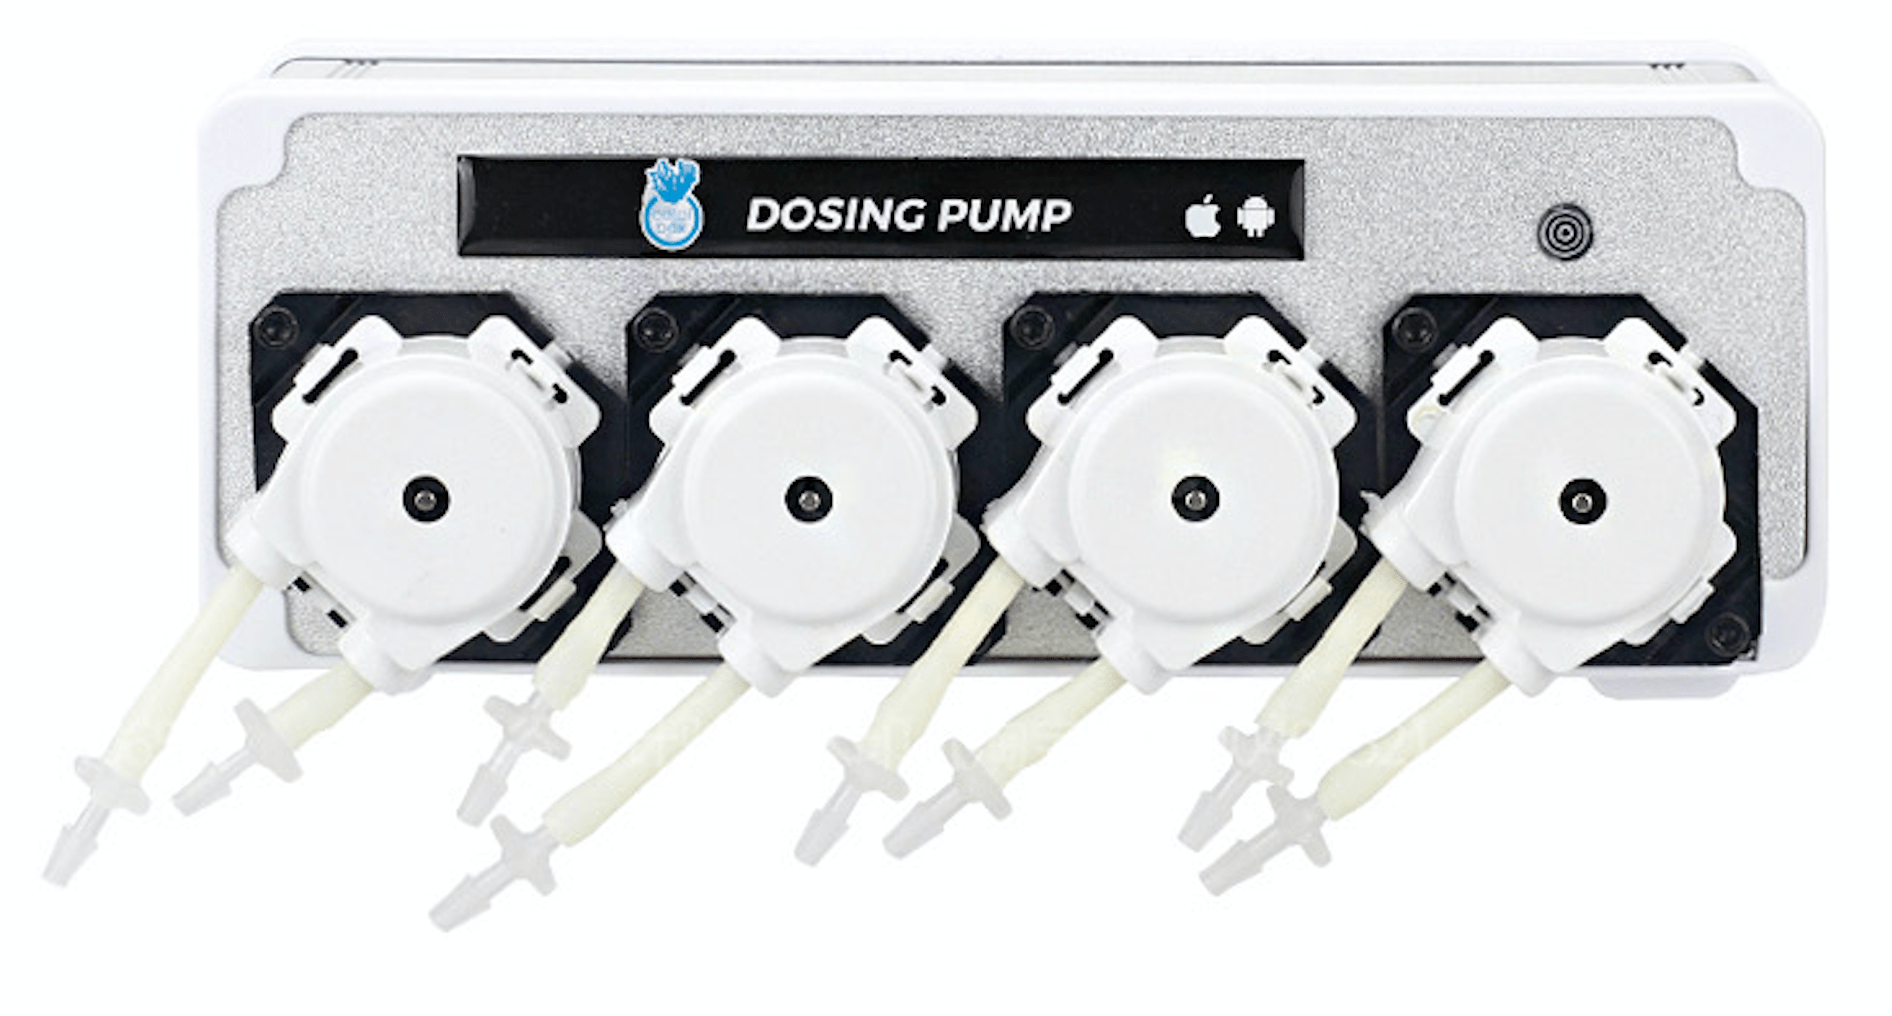 hight resolution of coral box wifi dosing pump